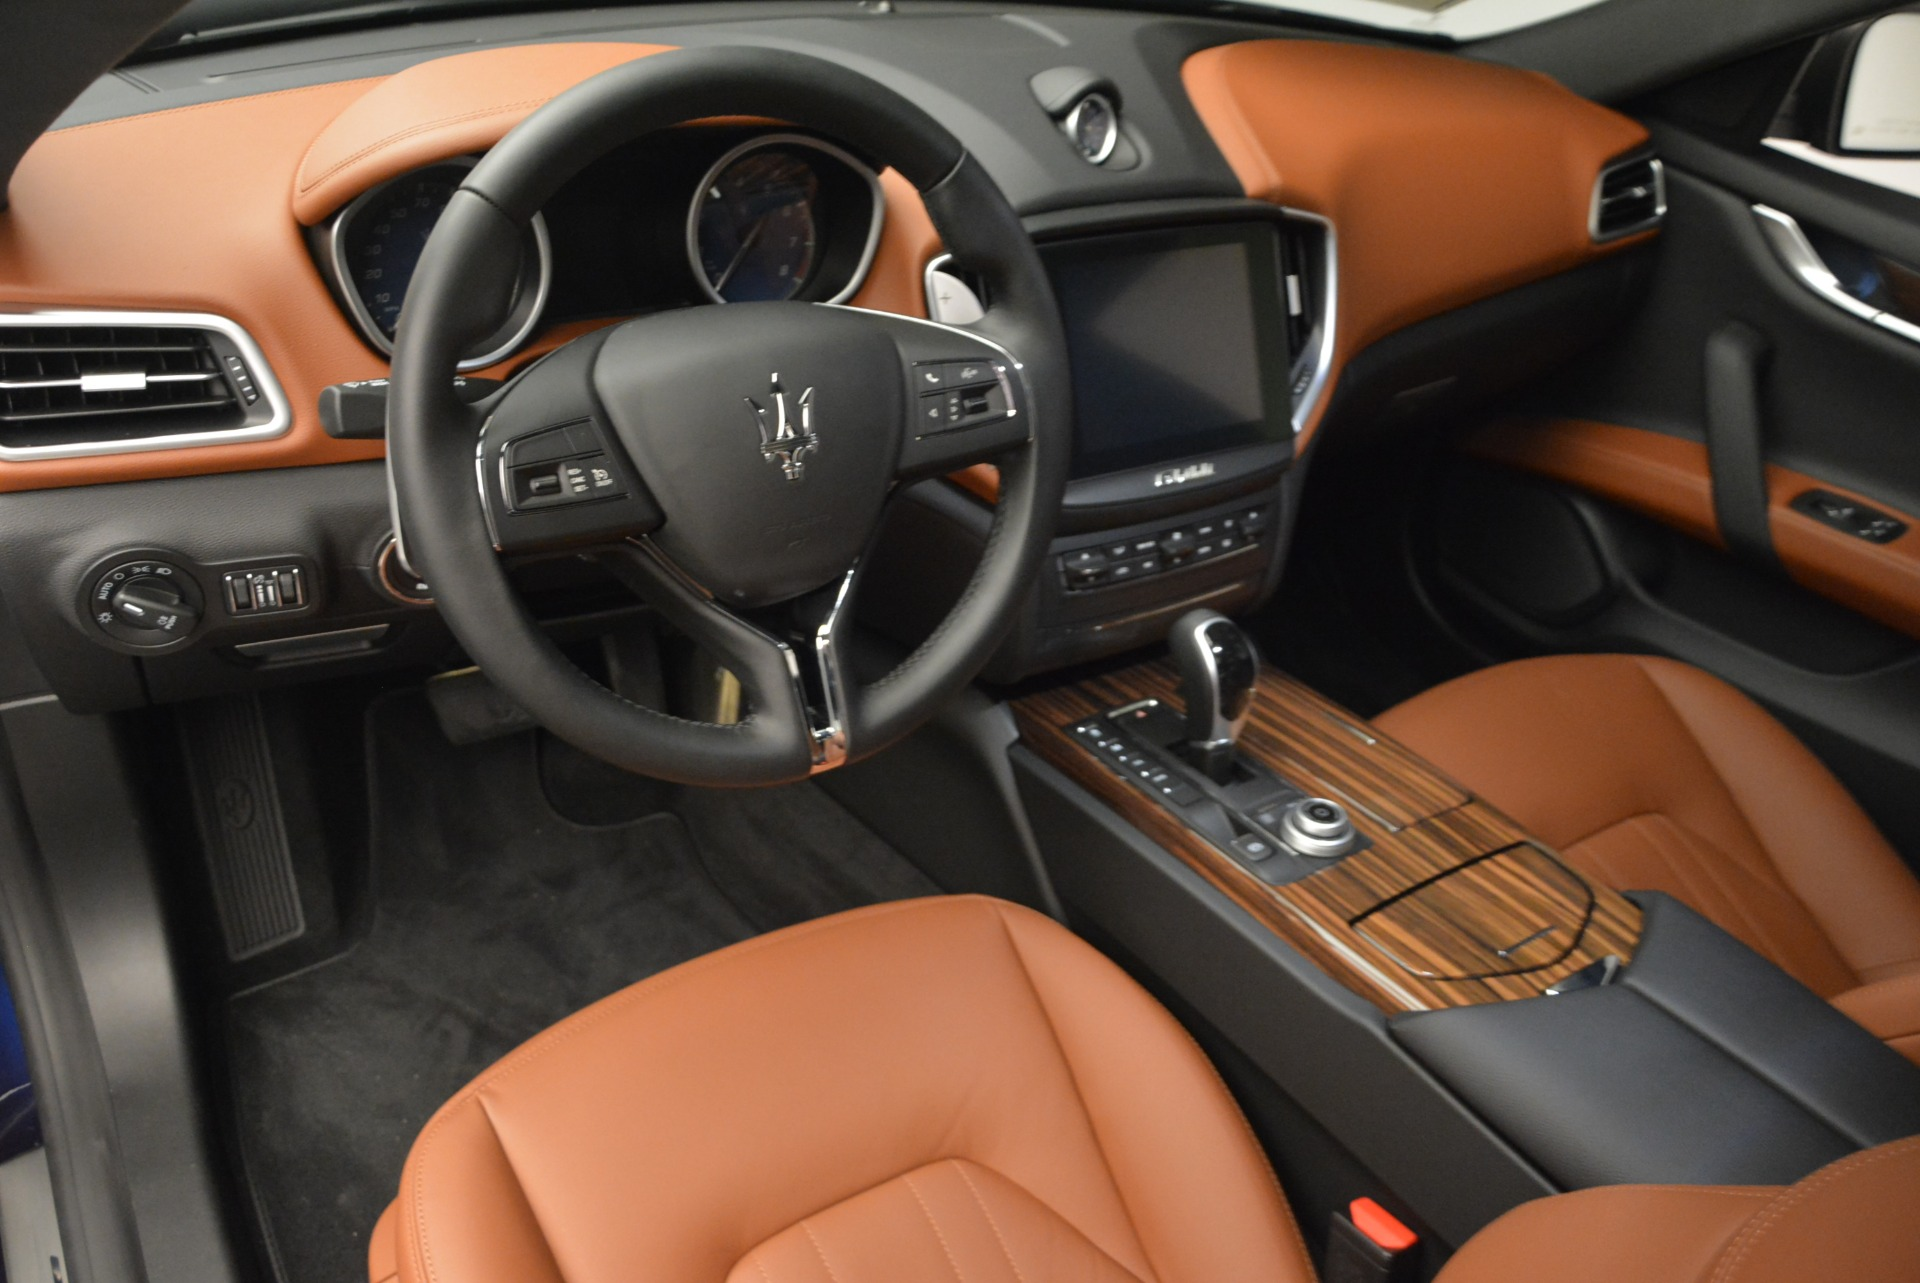 Used 2017 Maserati Ghibli S Q4 EX-LOANER For Sale In Westport, CT 608_p16